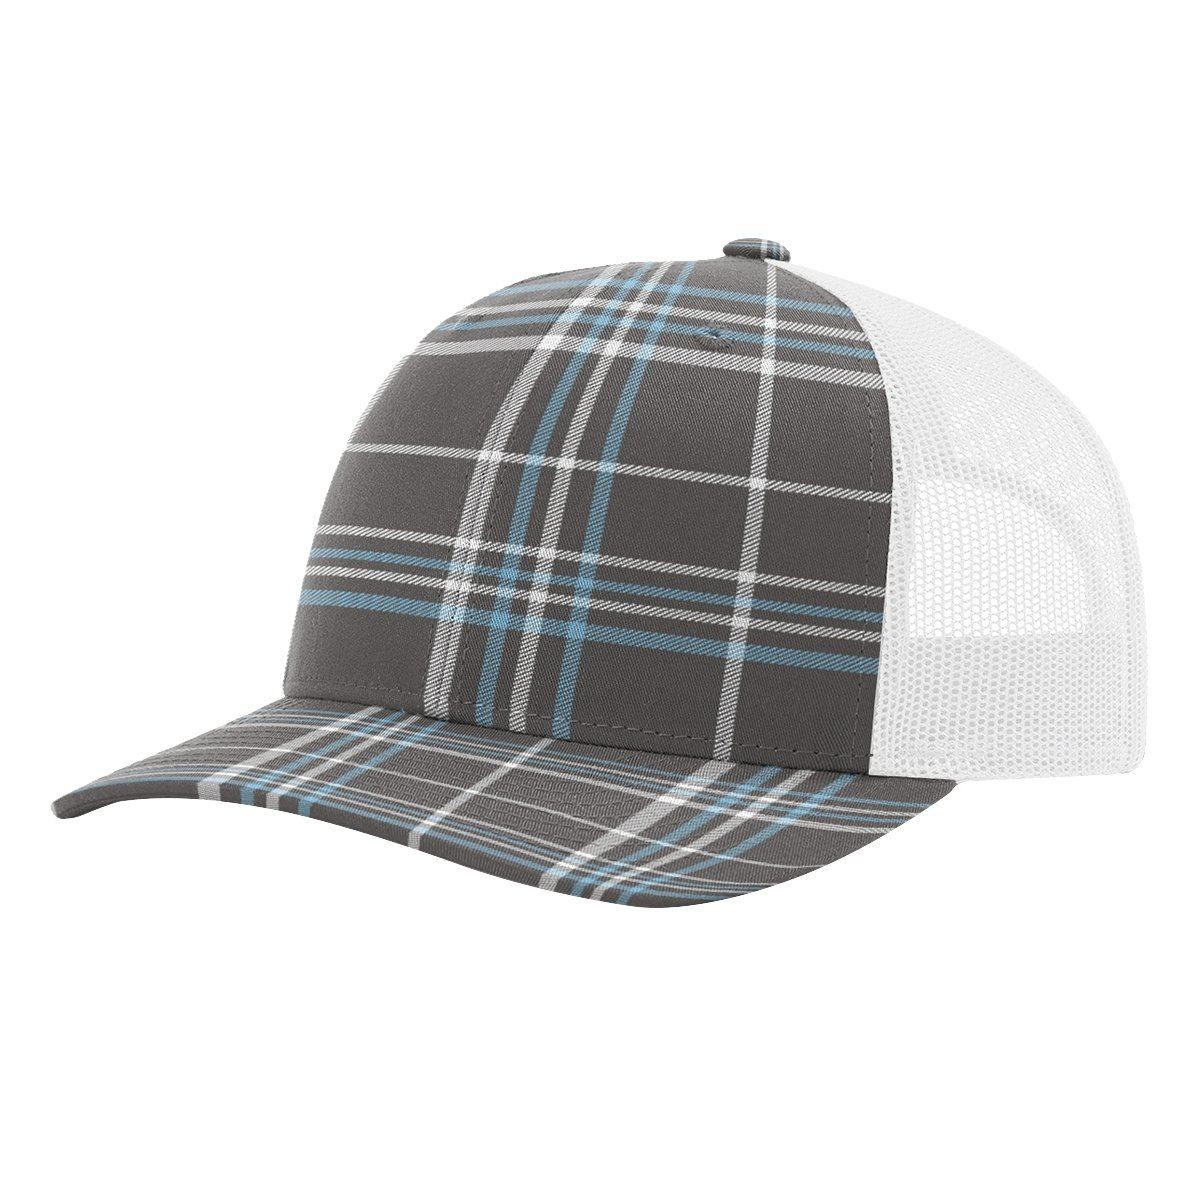 Twill Mesh Back Trucker Snapback Hat -- CHARCOAL COLUMBIA BLUE PLAID WHITE  at Amazon Men s Clothing store  c39017e4973